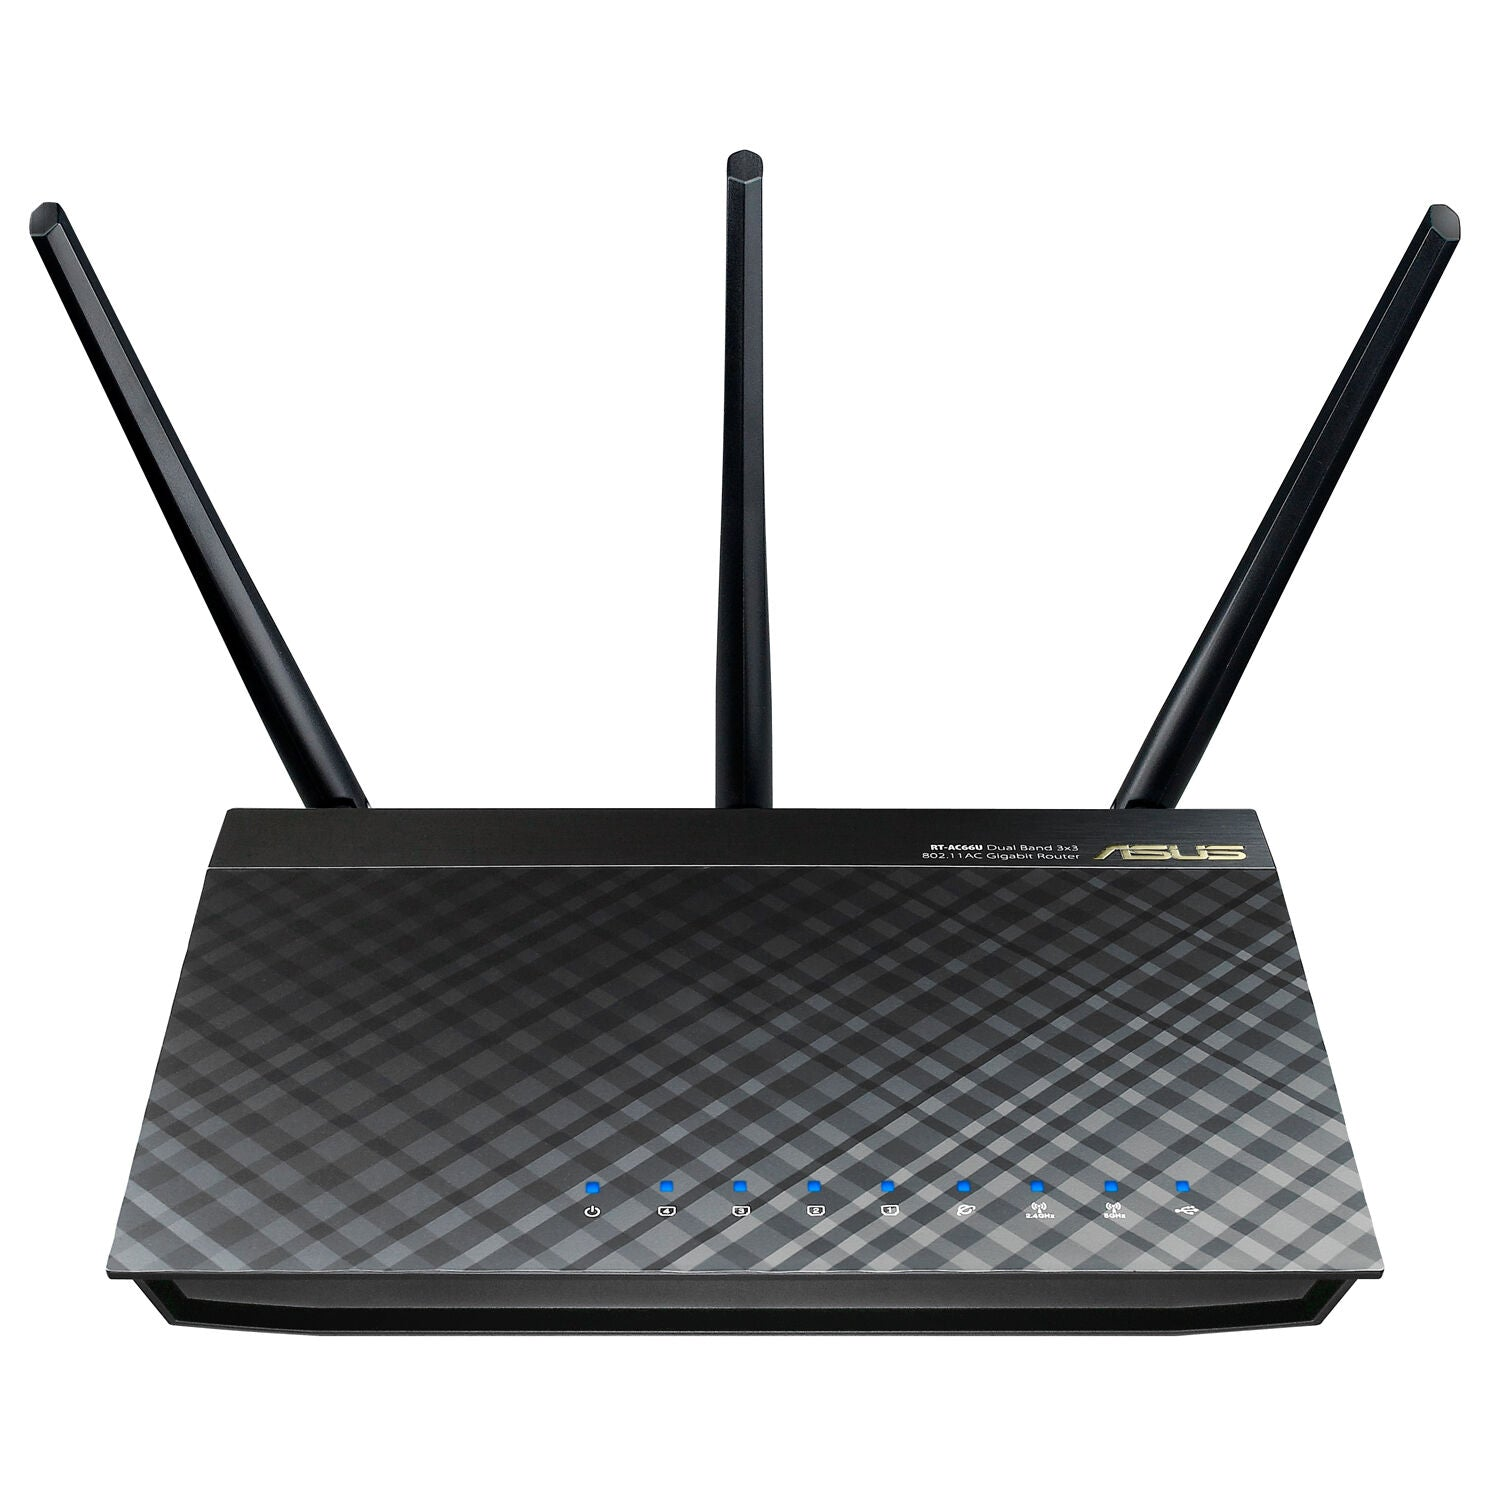 Asus RT-AC66U B1 IEEE 802.11ac Ethernet Wireless Router